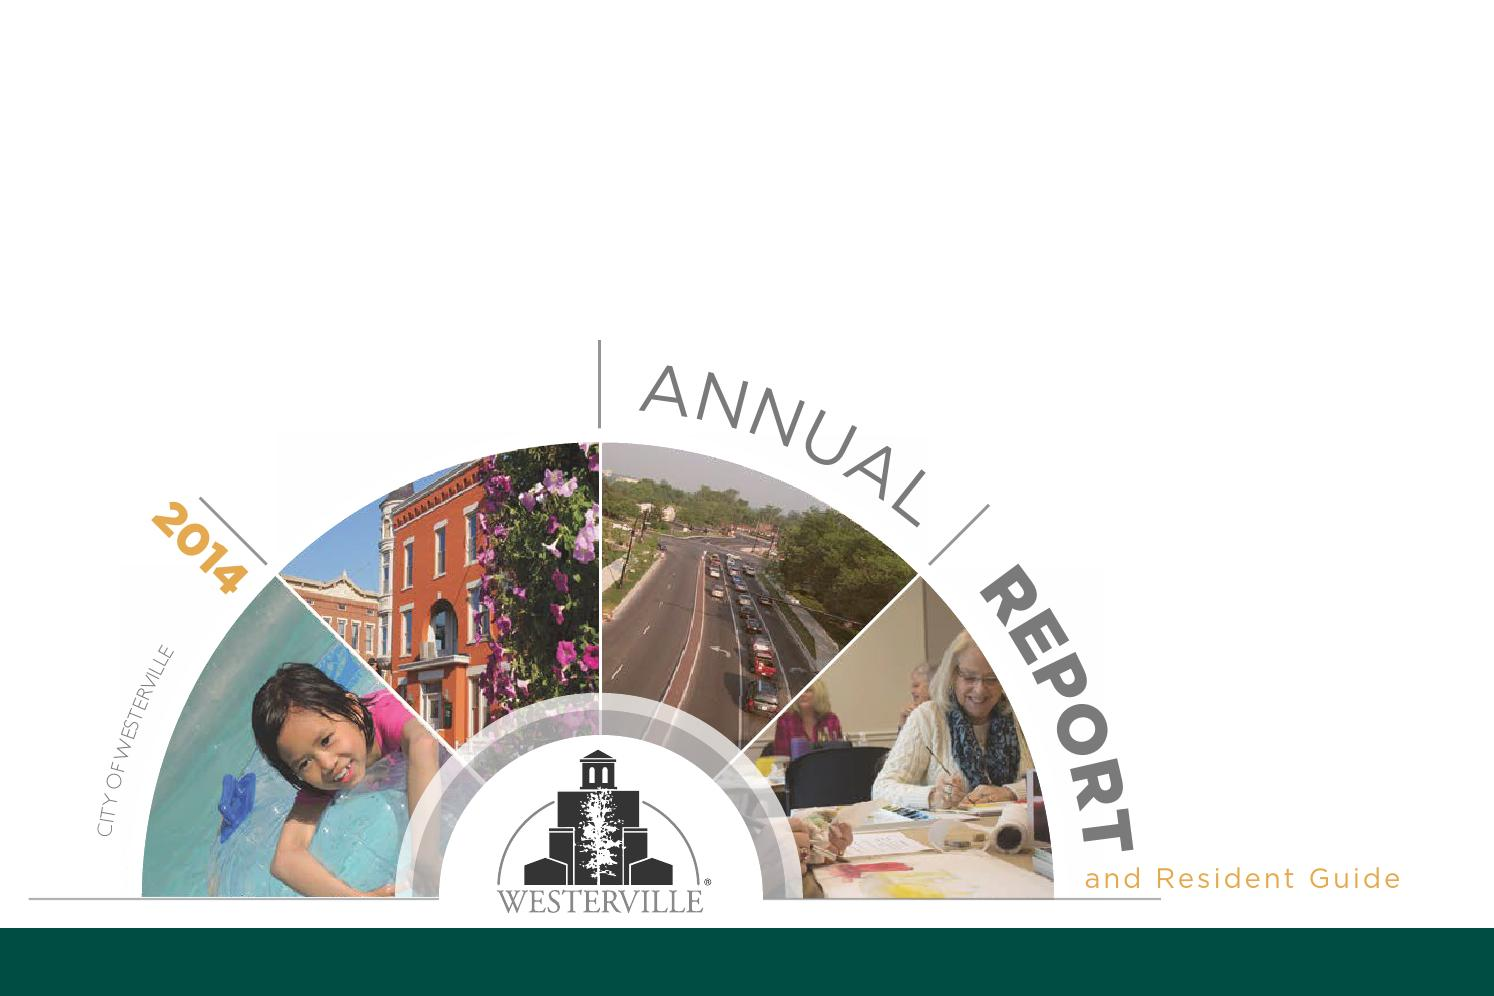 city of westerville annual report and resident guide by city city of westerville 2014 annual report and resident guide by city of westerville issuu